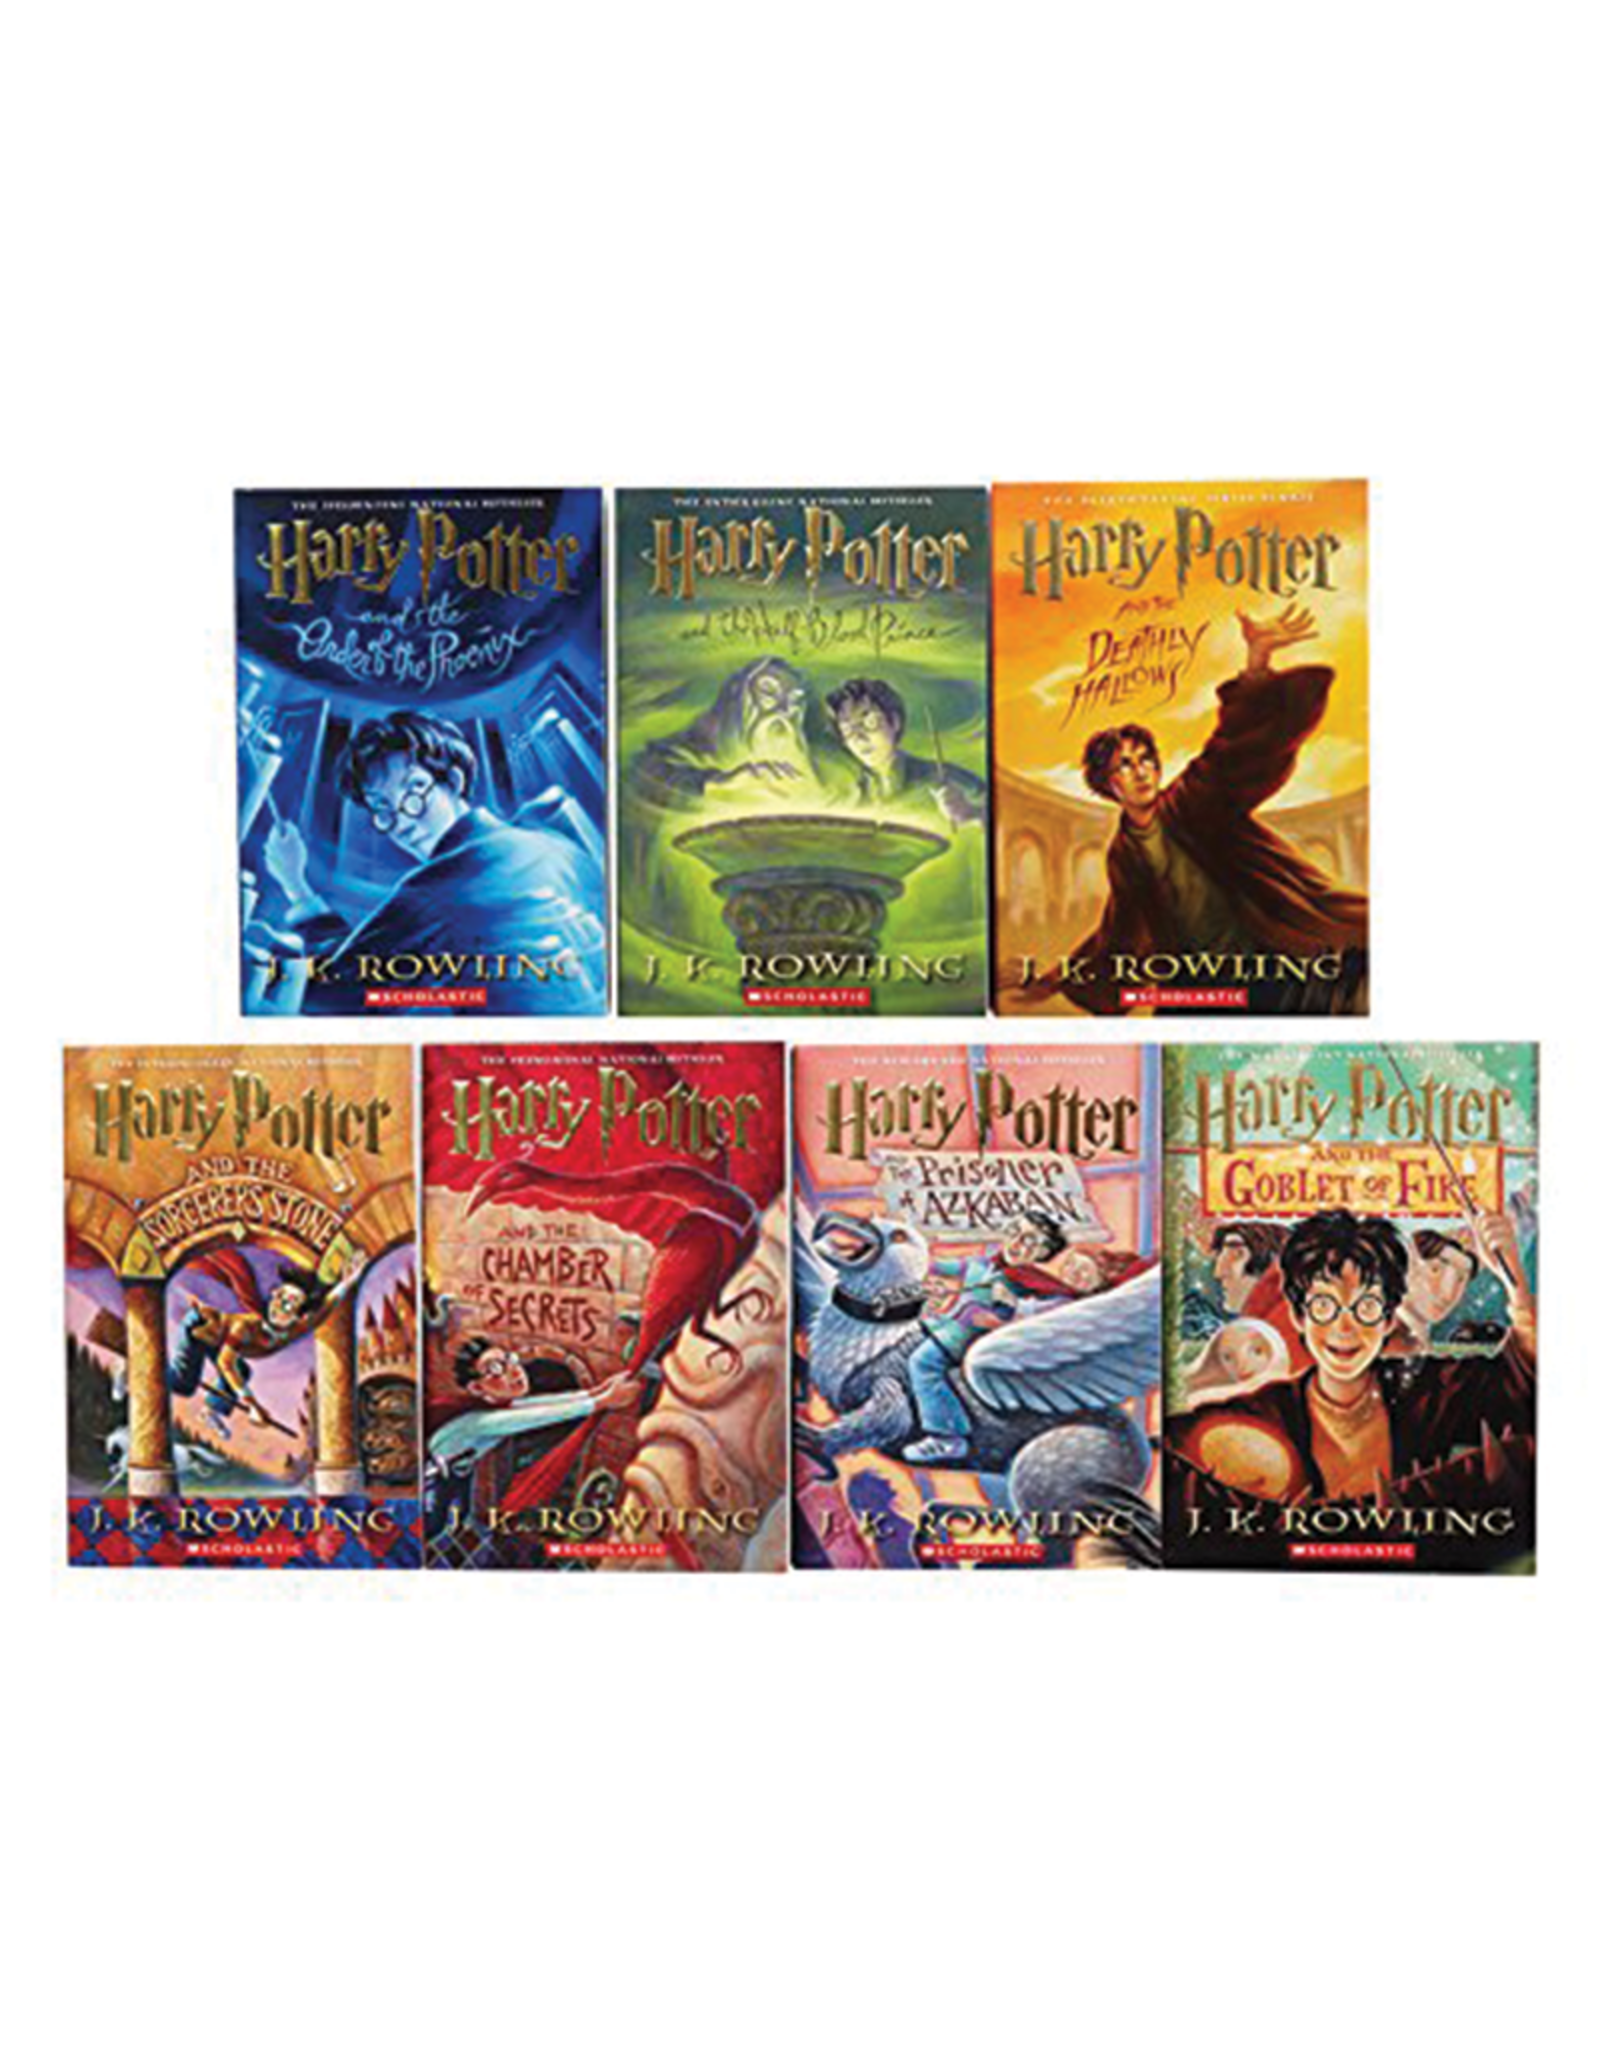 Harry Potter Complete Boxed Set